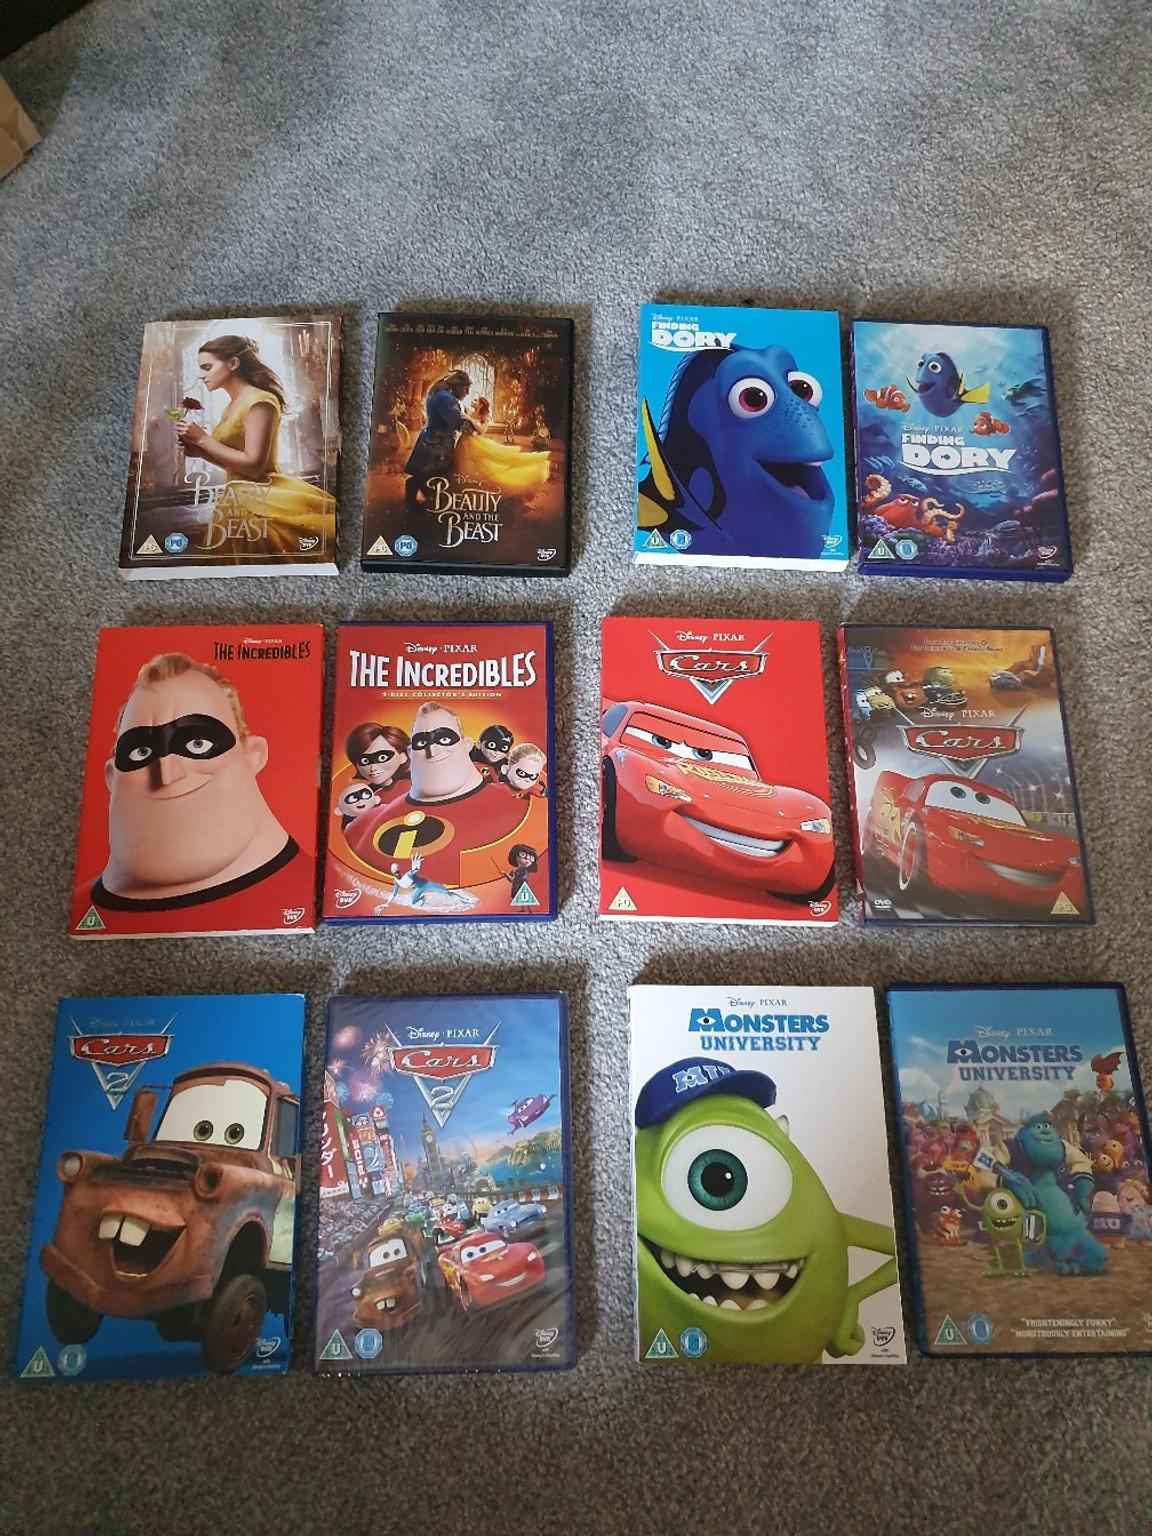 Disney/Pixar DVDs with Limited Edition Sleeve in EH20 ...